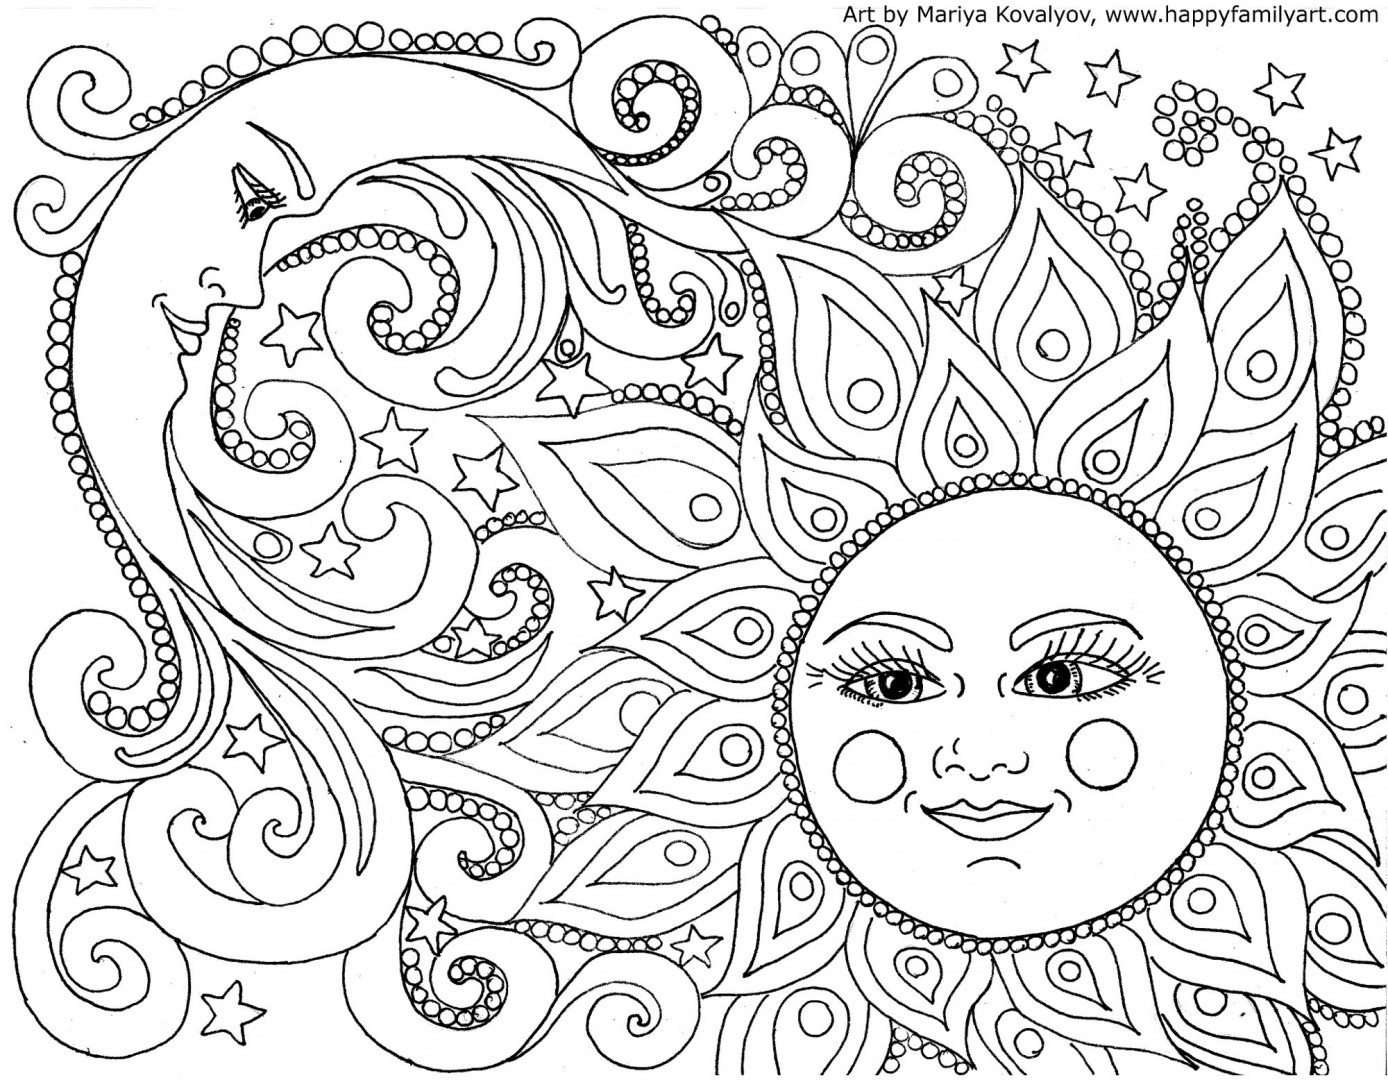 1388x1080 Artistic Hippie Sun Coloring Pages Printable Arts For Adults